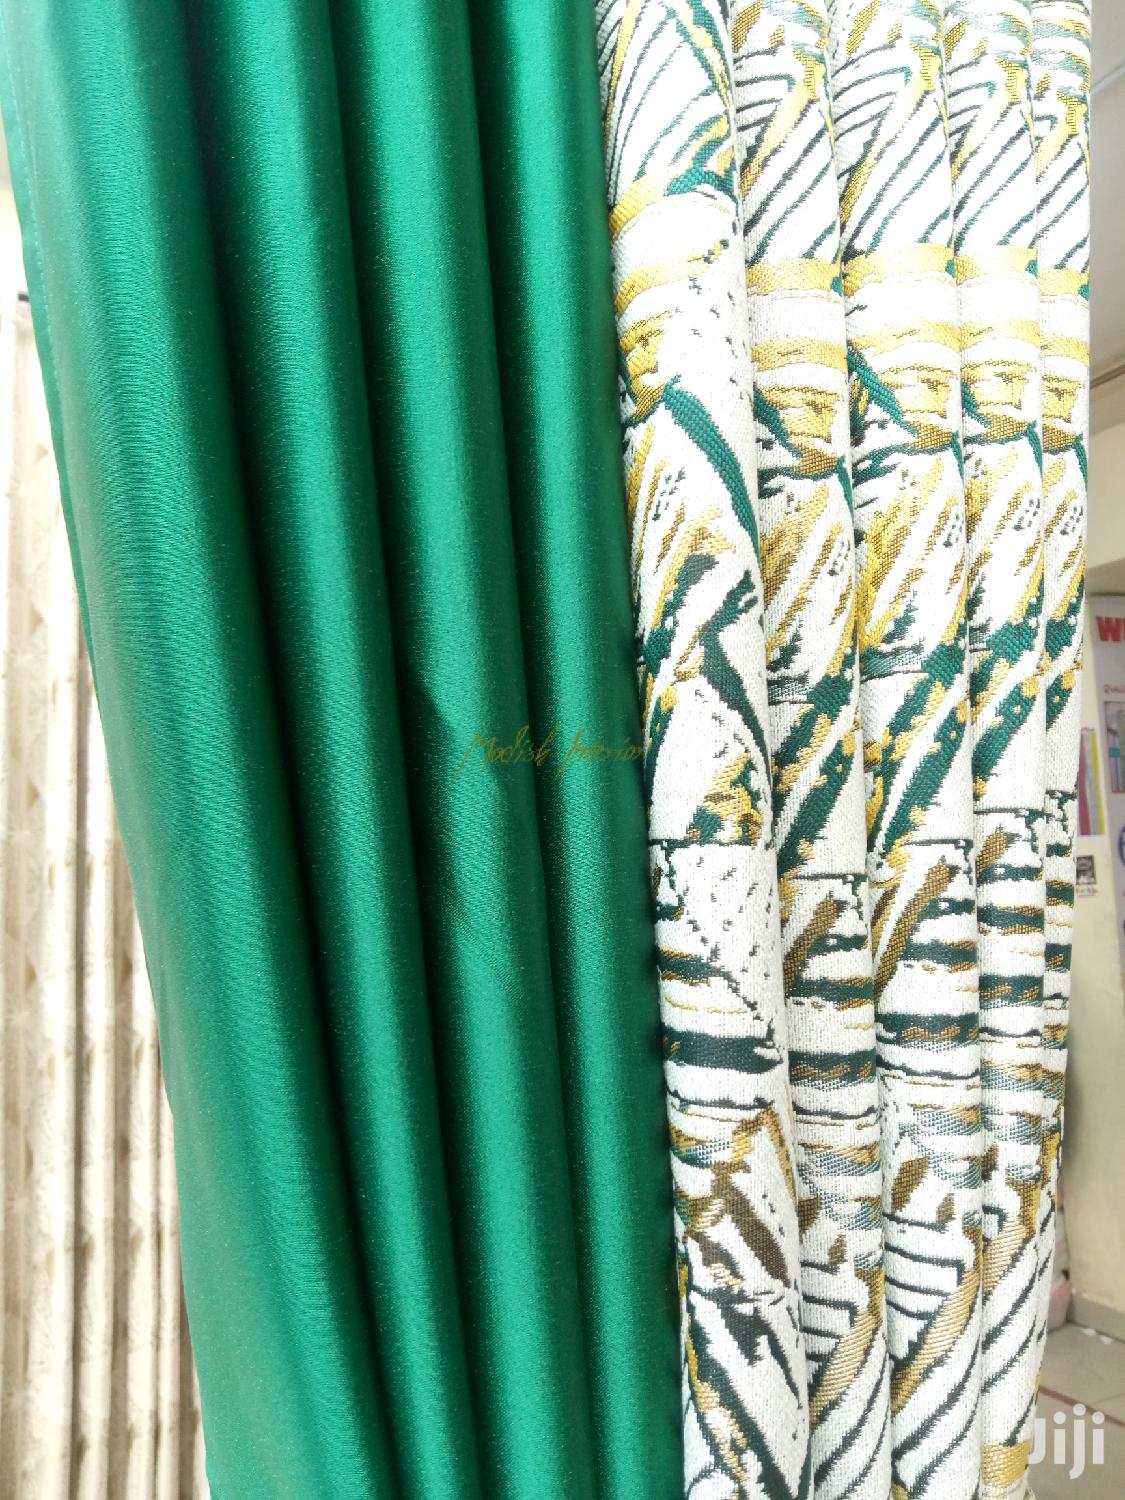 Emerald Green Curtains In Nairobi Central Home Accessories Modish Interior Jiji Co Ke